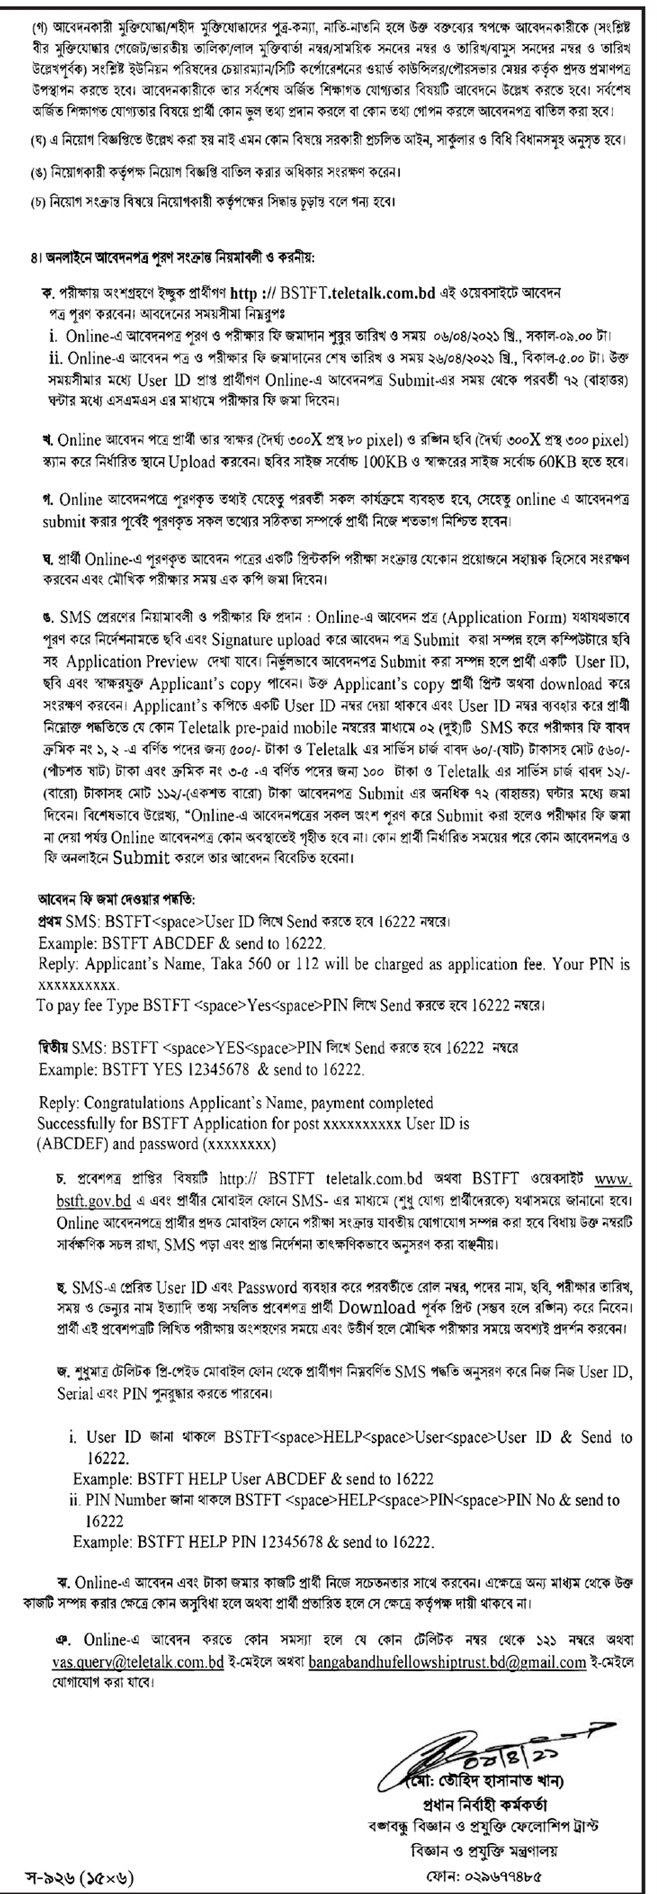 Bangabandhu Science and Technology Fellowship Trust Job Circular 2021